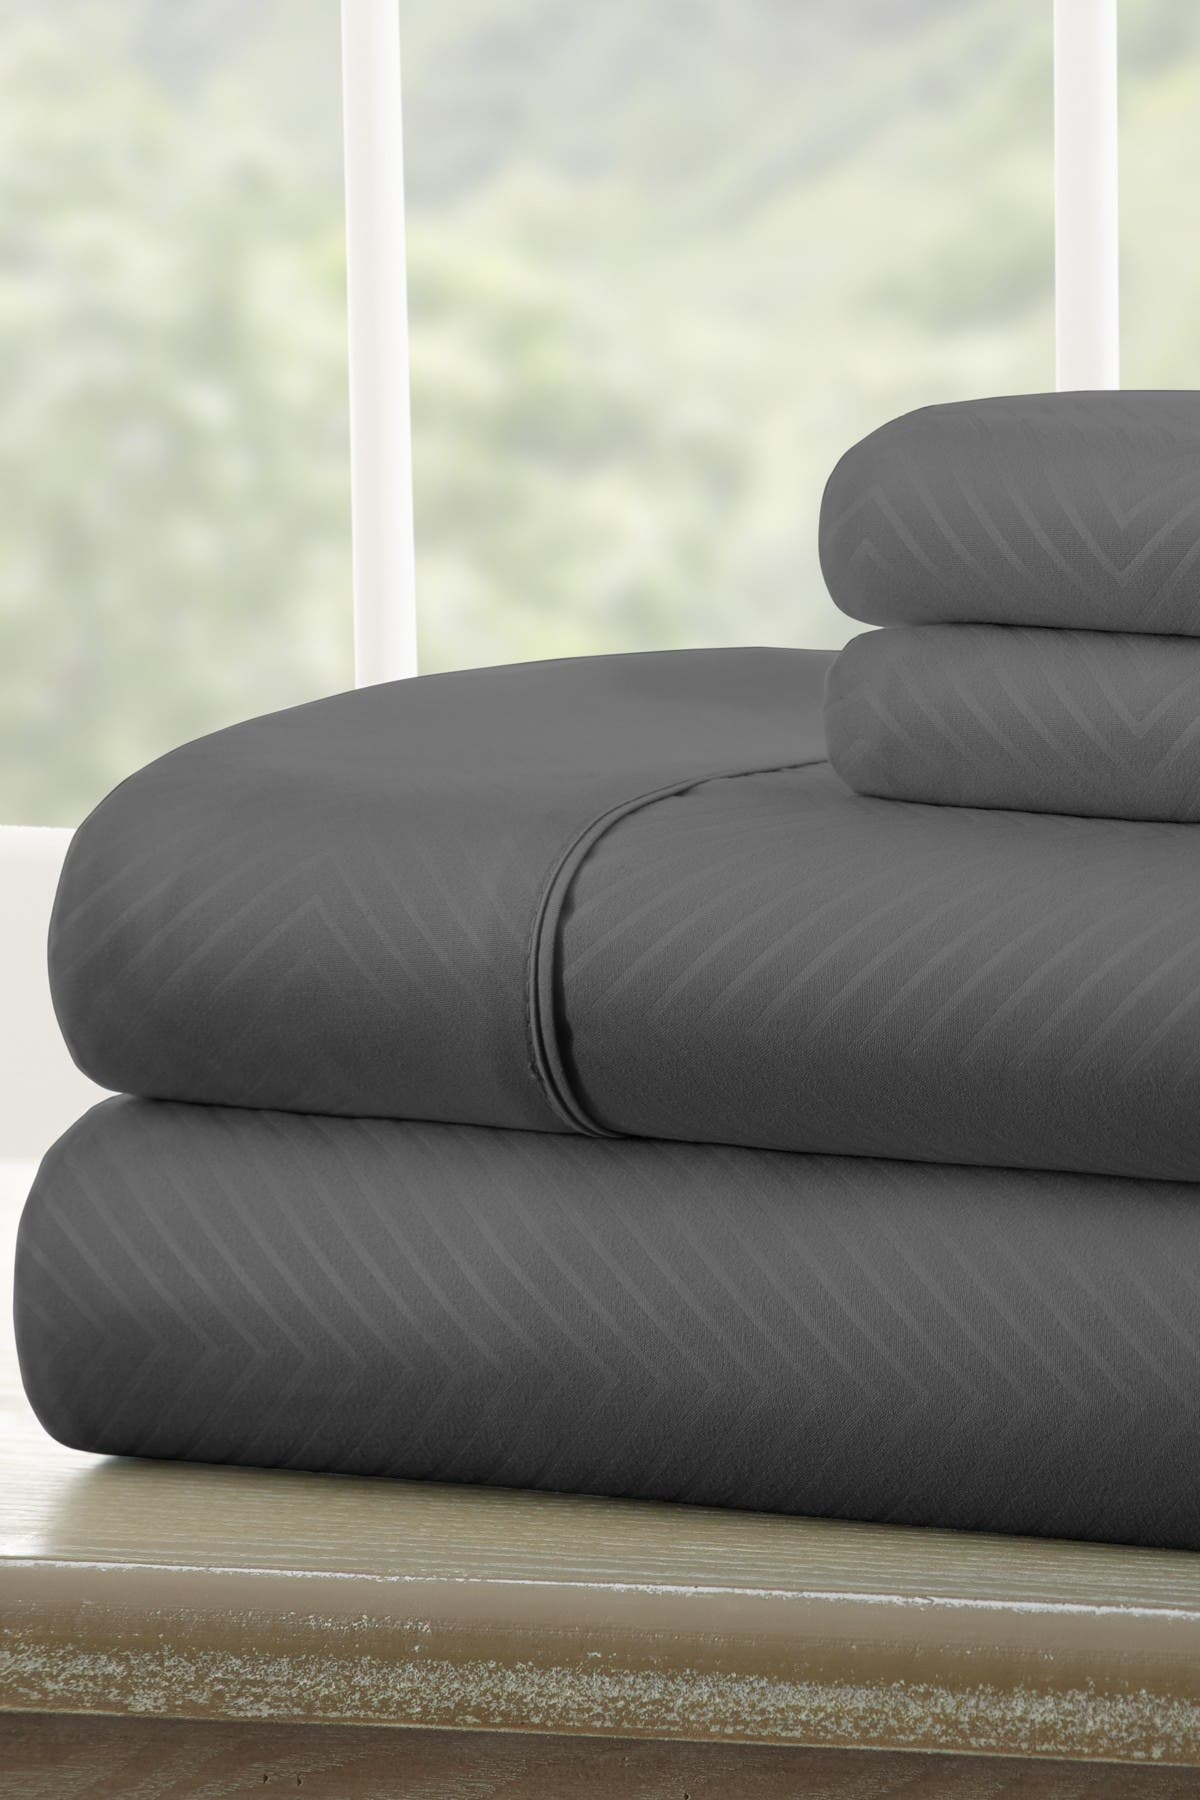 Image of IENJOY HOME Full Hotel Collection Premium Ultra Soft 4-Piece Chevron Bed Sheet Set - Gray